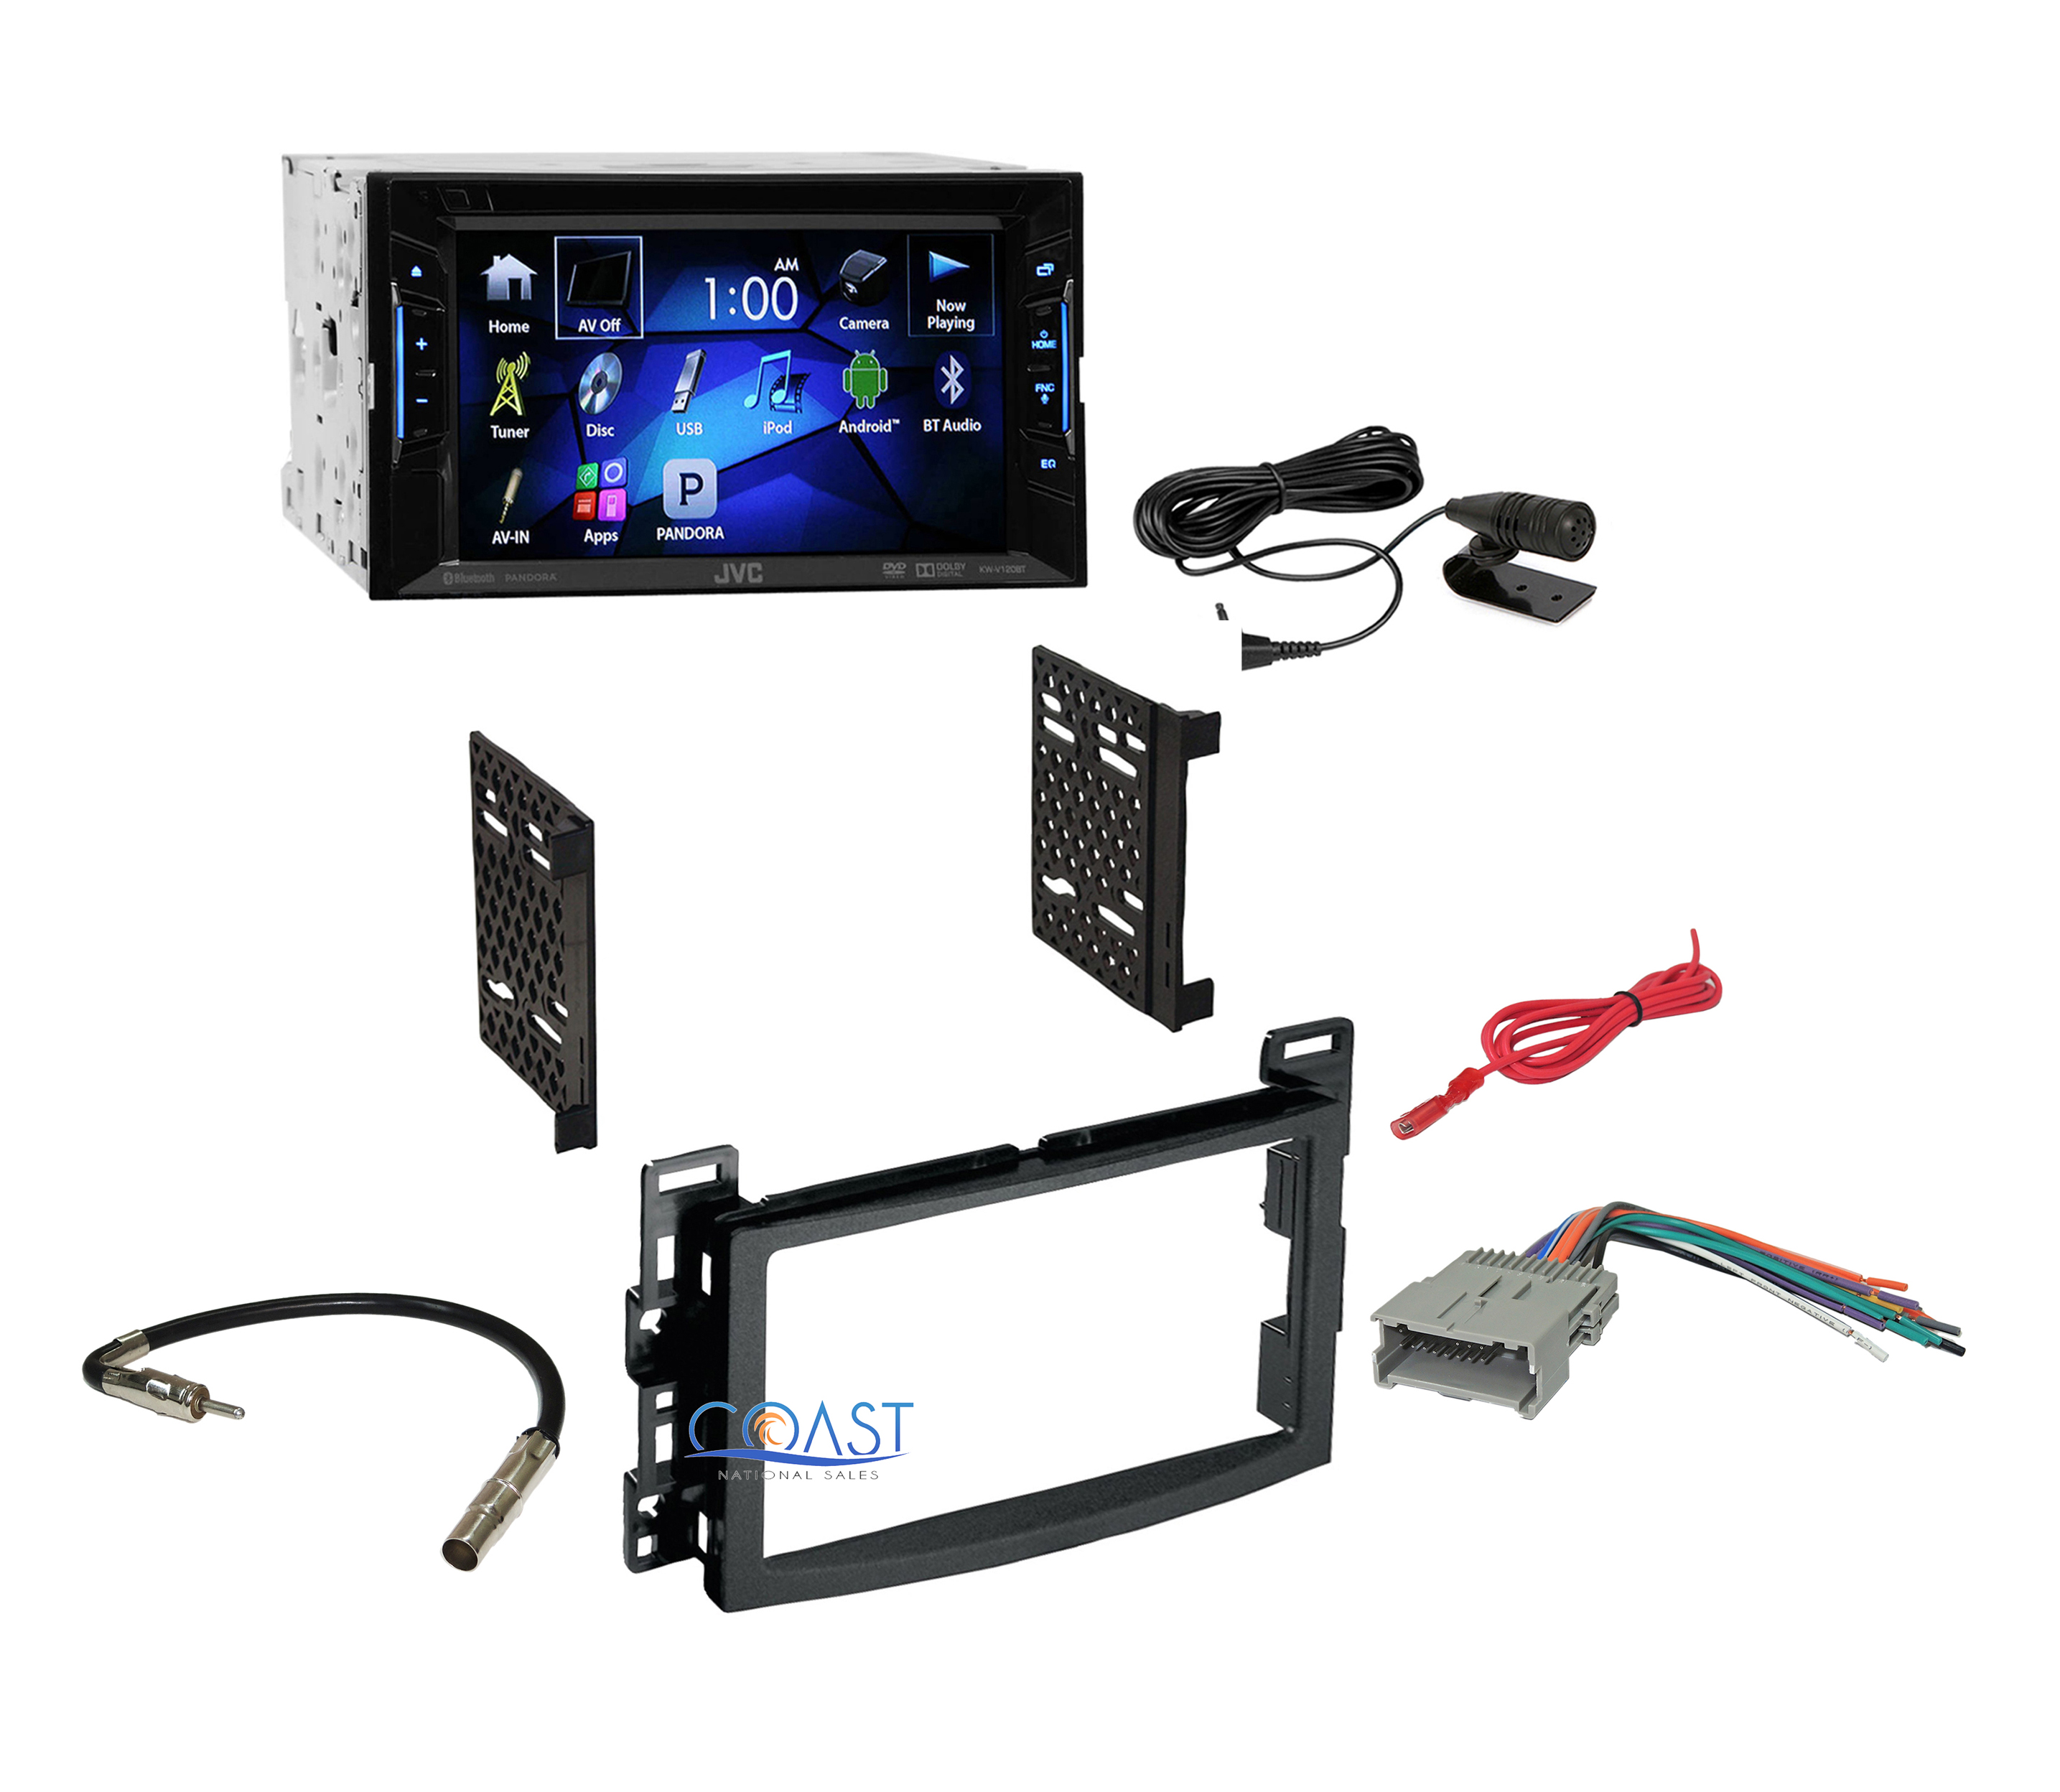 jvc car radio stereo double din dash kit harness for chevy. Black Bedroom Furniture Sets. Home Design Ideas